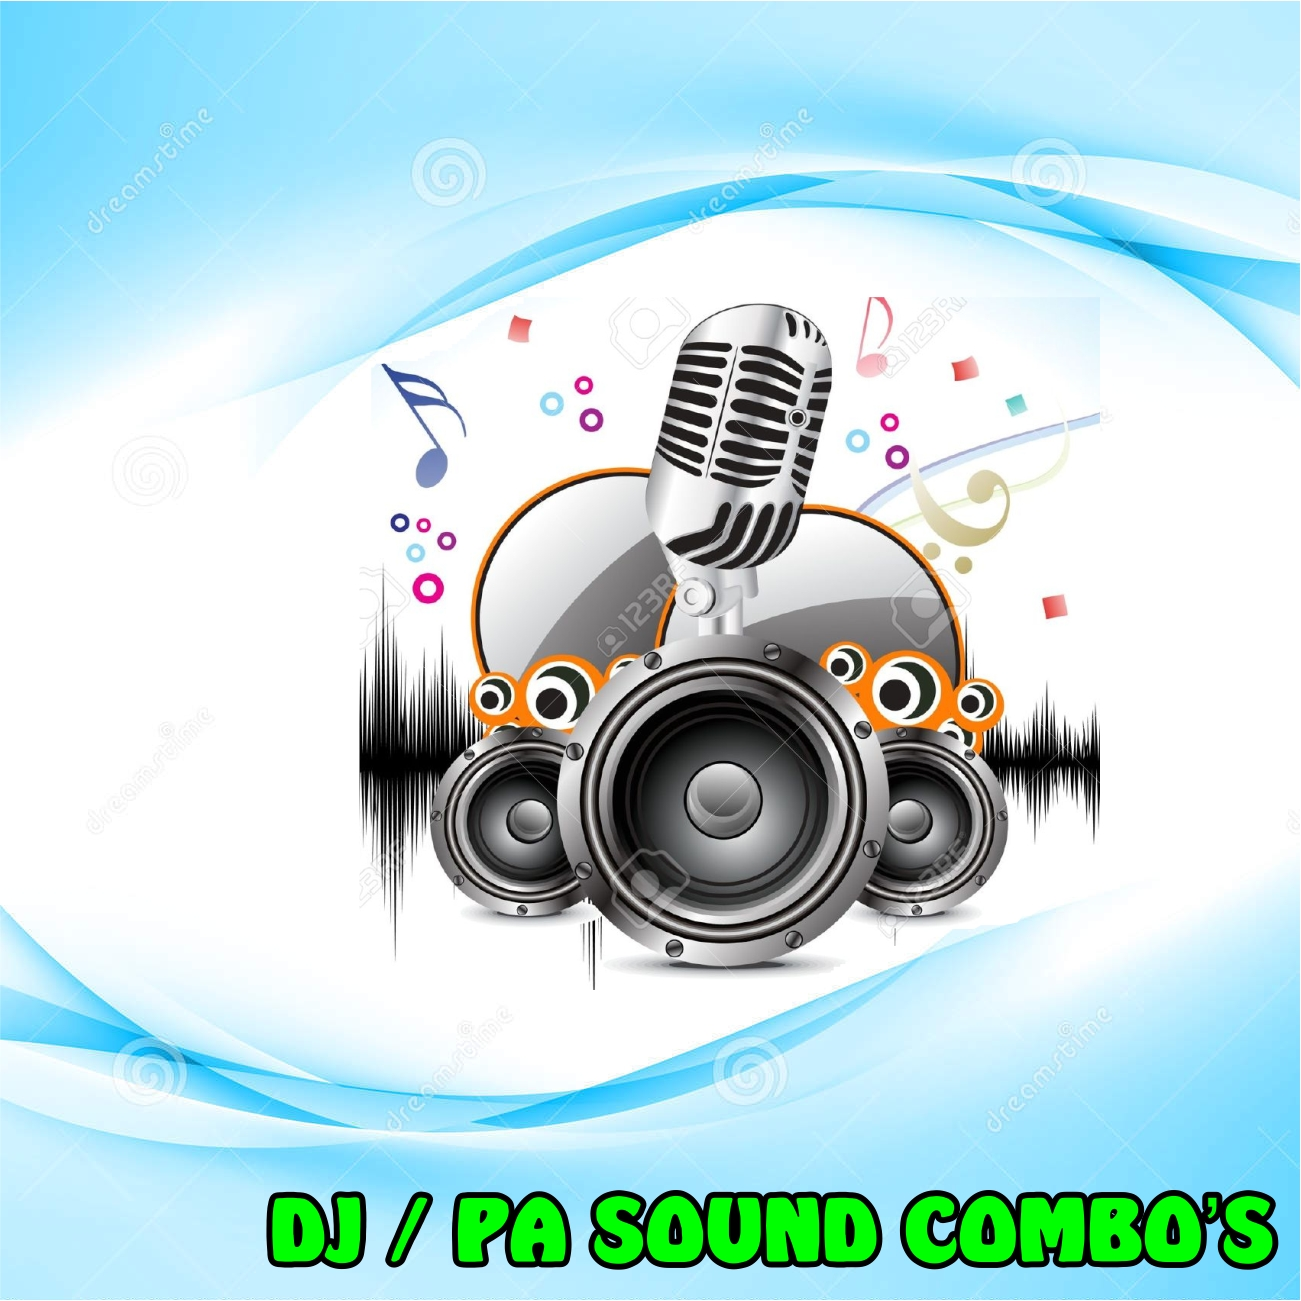 CLICK ME DJ COMBO PACKAGES FOR SALE DISCO COMBO PACKAGES FOR SALE AT GRAVITY DJ STORE PA SOUND PACKAGES FOR CHEAPEST DEAL AT GRAVITY SOUND AND LIGHTING WAREHOUSE IN DURBAN 0315072736  DJ EQUIPMENT DISCO SOUND AUDIO GRAVITY DJ STORE 0315072463 DJ SOUND AUDIO EQUIPMENT FOR SALE CHEAPEST DEAL IN ALL PIONEER DJ EQUIPMENT IN DURBAN GRAVITY SOUND AND LIGHTINNG WAREHOUSE 0315072736